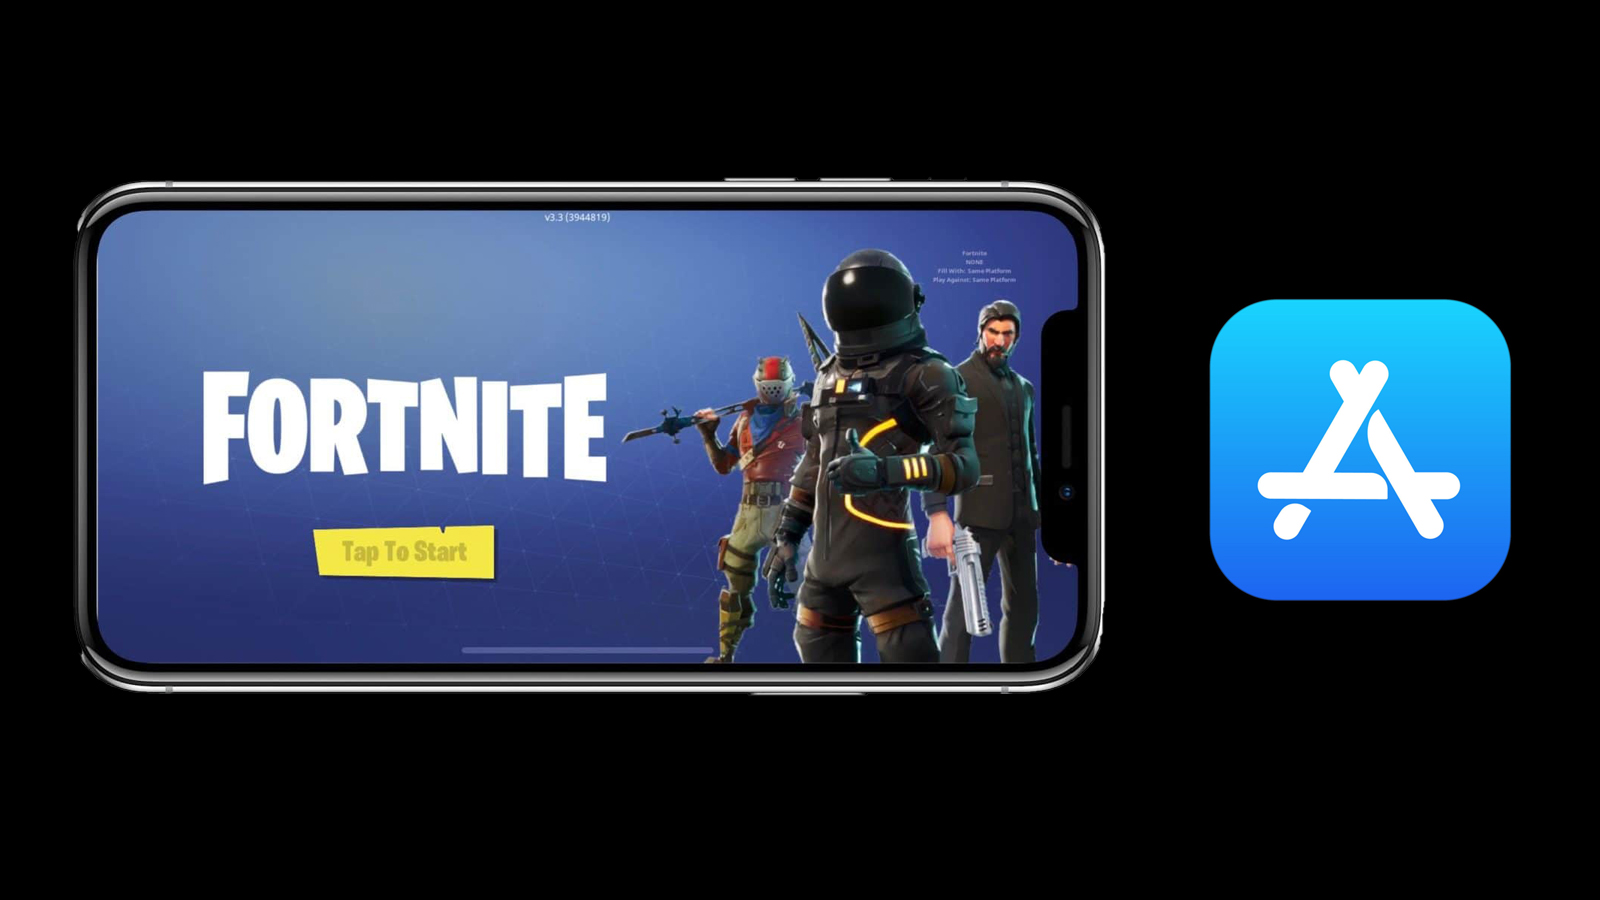 app store, epic games, fortnite